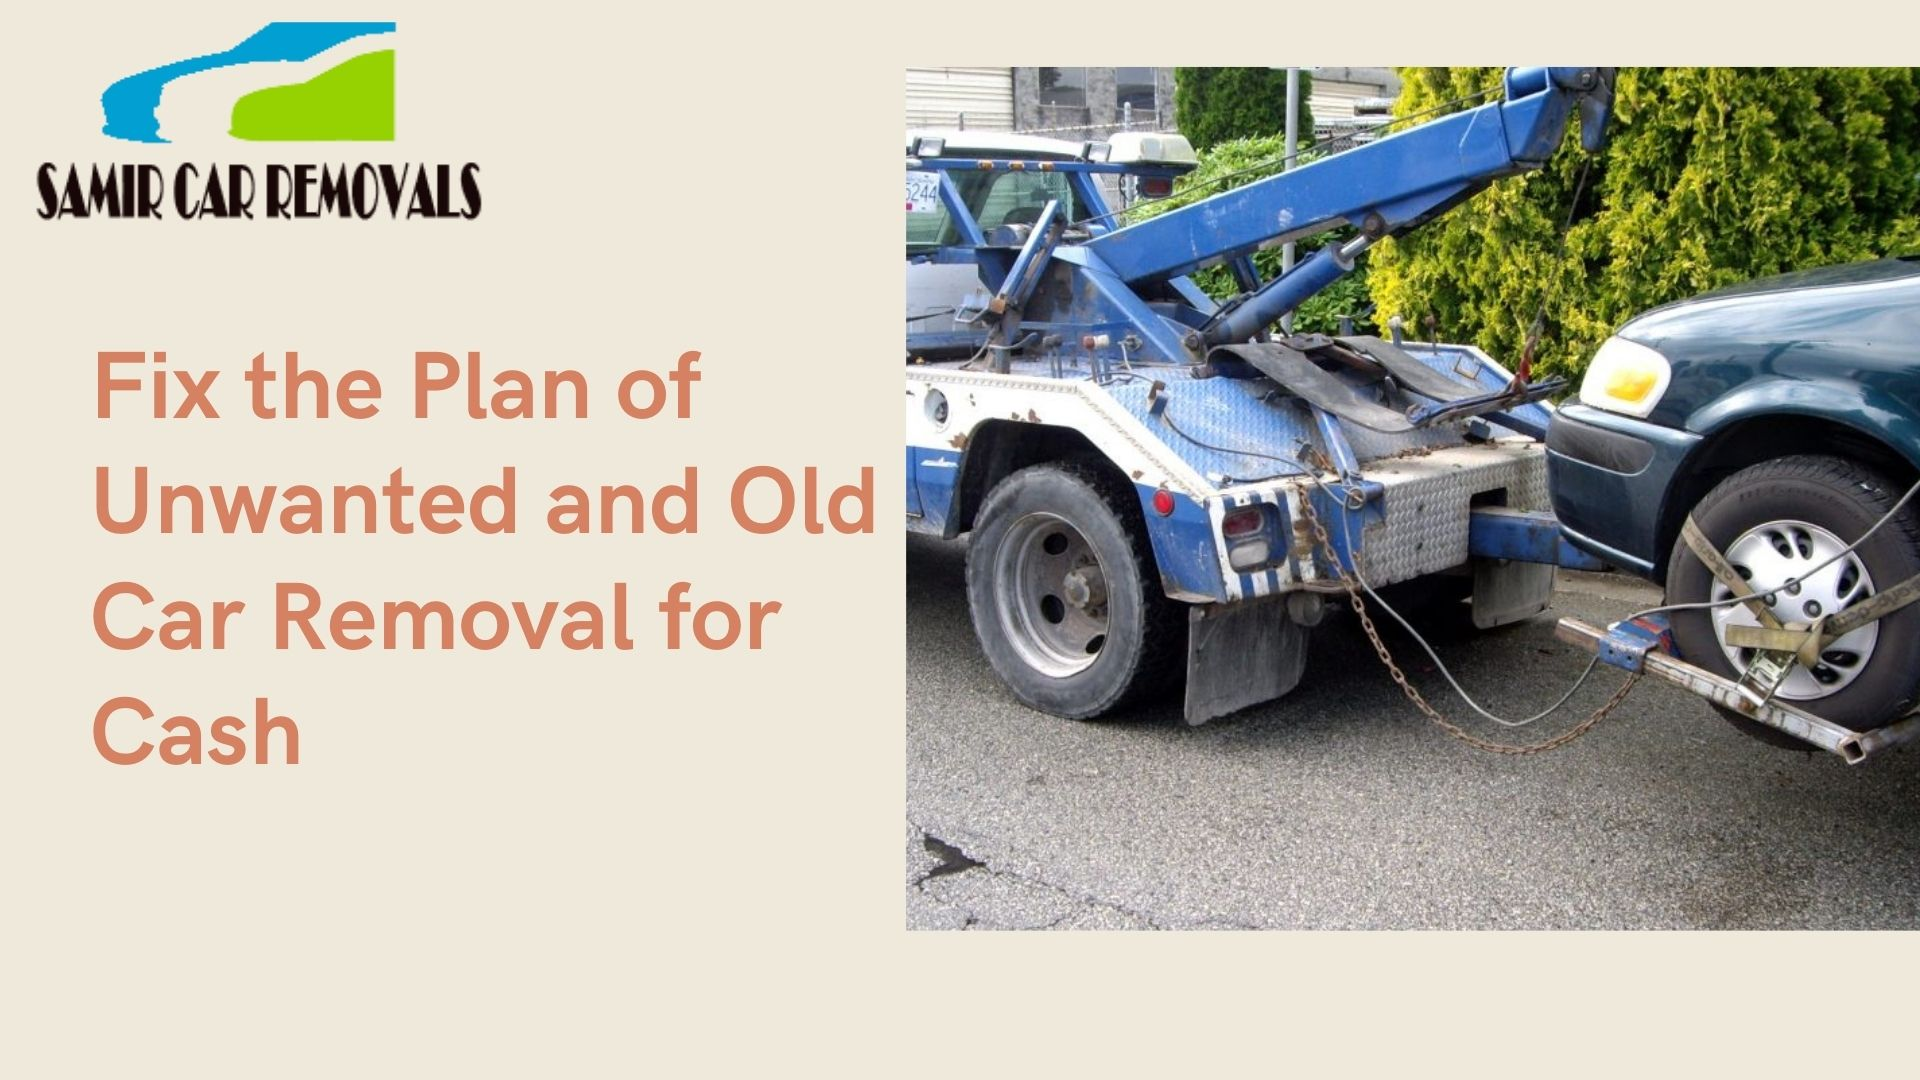 Fix the Plan of Unwanted and Old Car Removal for Cash